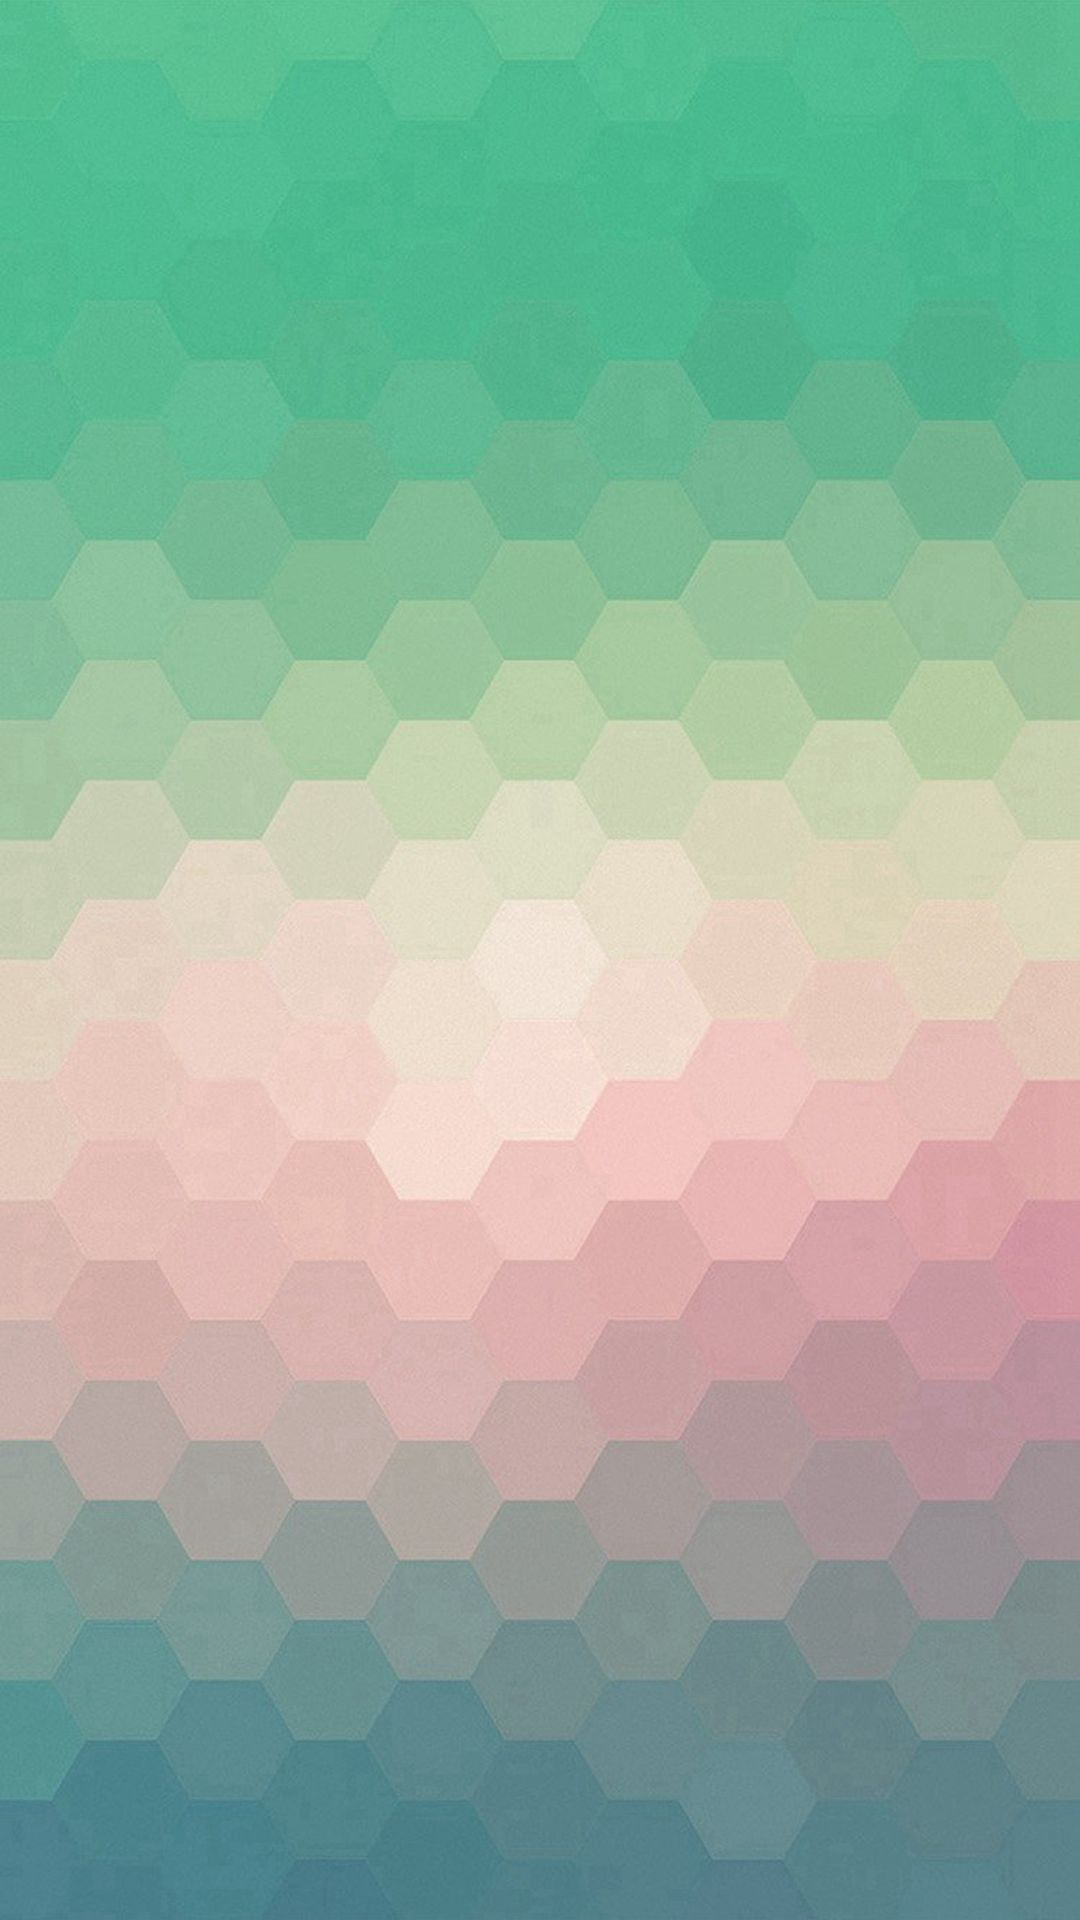 Beautiful Wallpaper Mountain Hexagon - 5f661f3dcc7d47bc601f345e30afc534  Pictures_483479.jpg